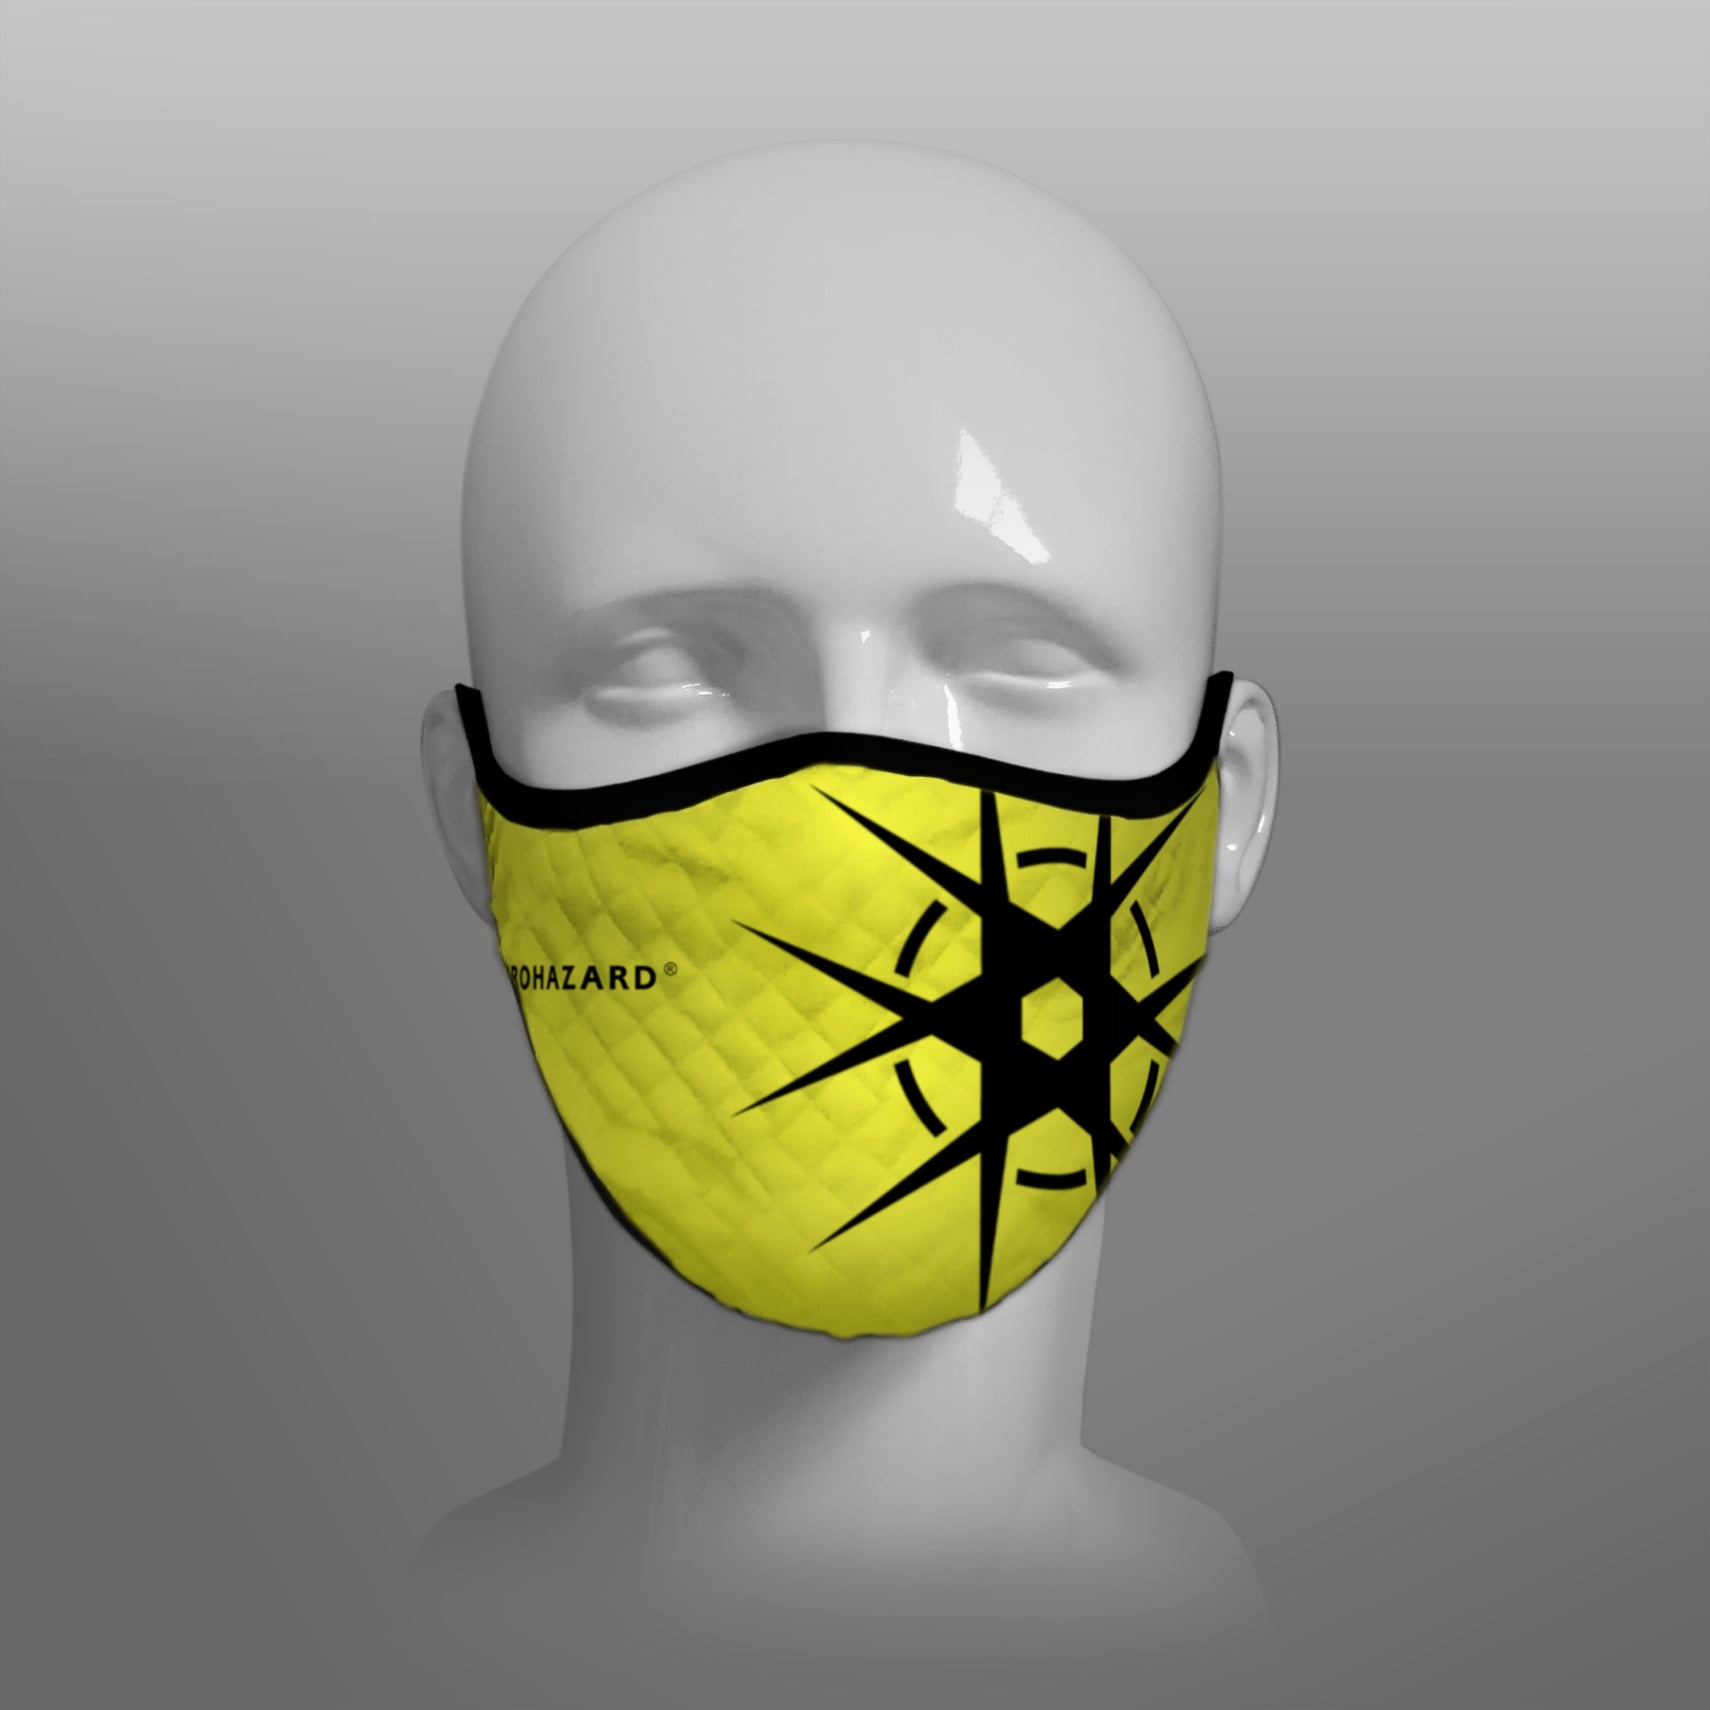 Virohazard tartan face mask facemask face-mask covid - 19 - pandemic Coronavirus - Nicola Sturgeon - Scottish cloth face covering filter - by Steven Patrick Sim the Tartan Artisan - Stevie Tartan Guy - yellow with logo